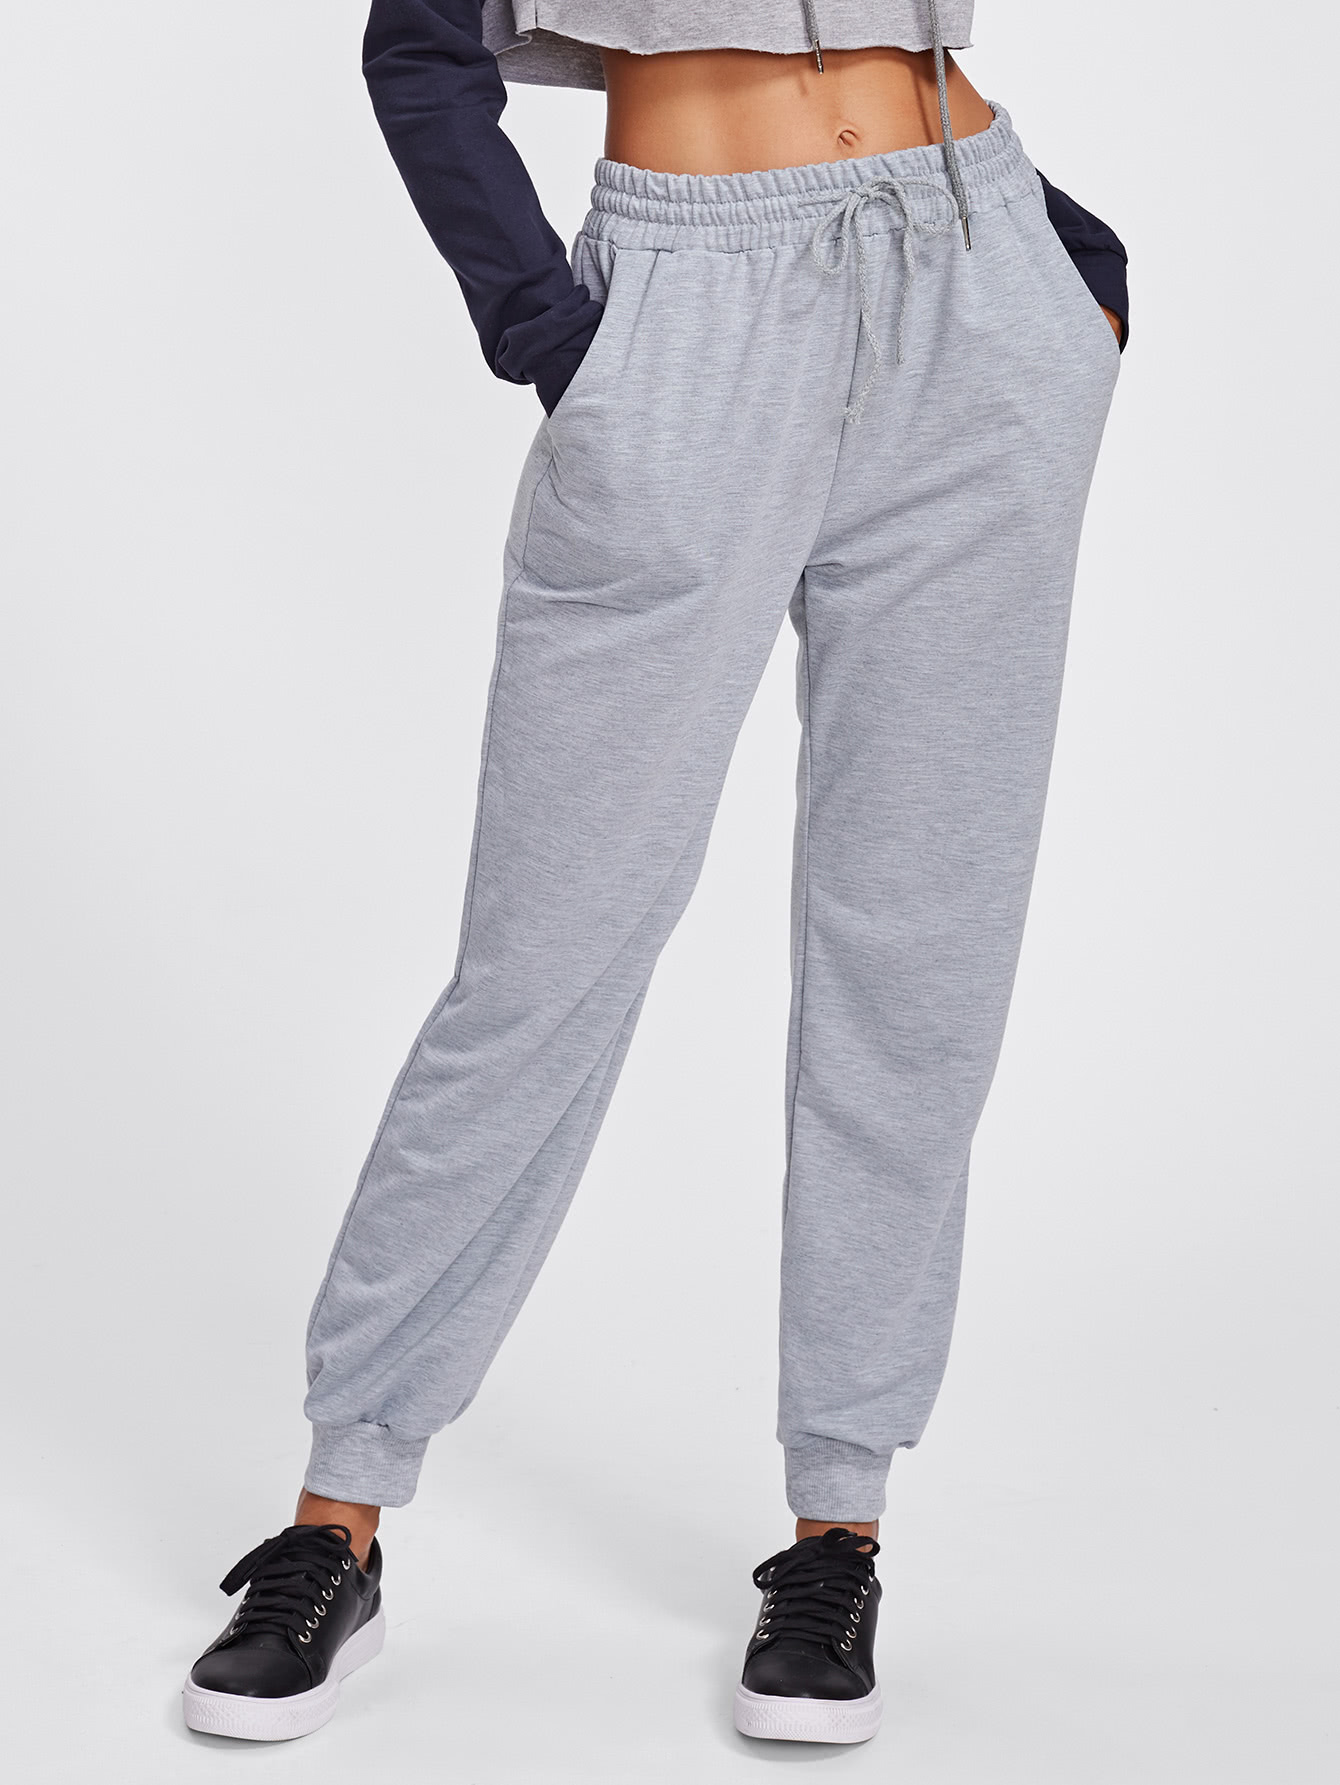 Drawstring Marled Sweatpants pants170904302